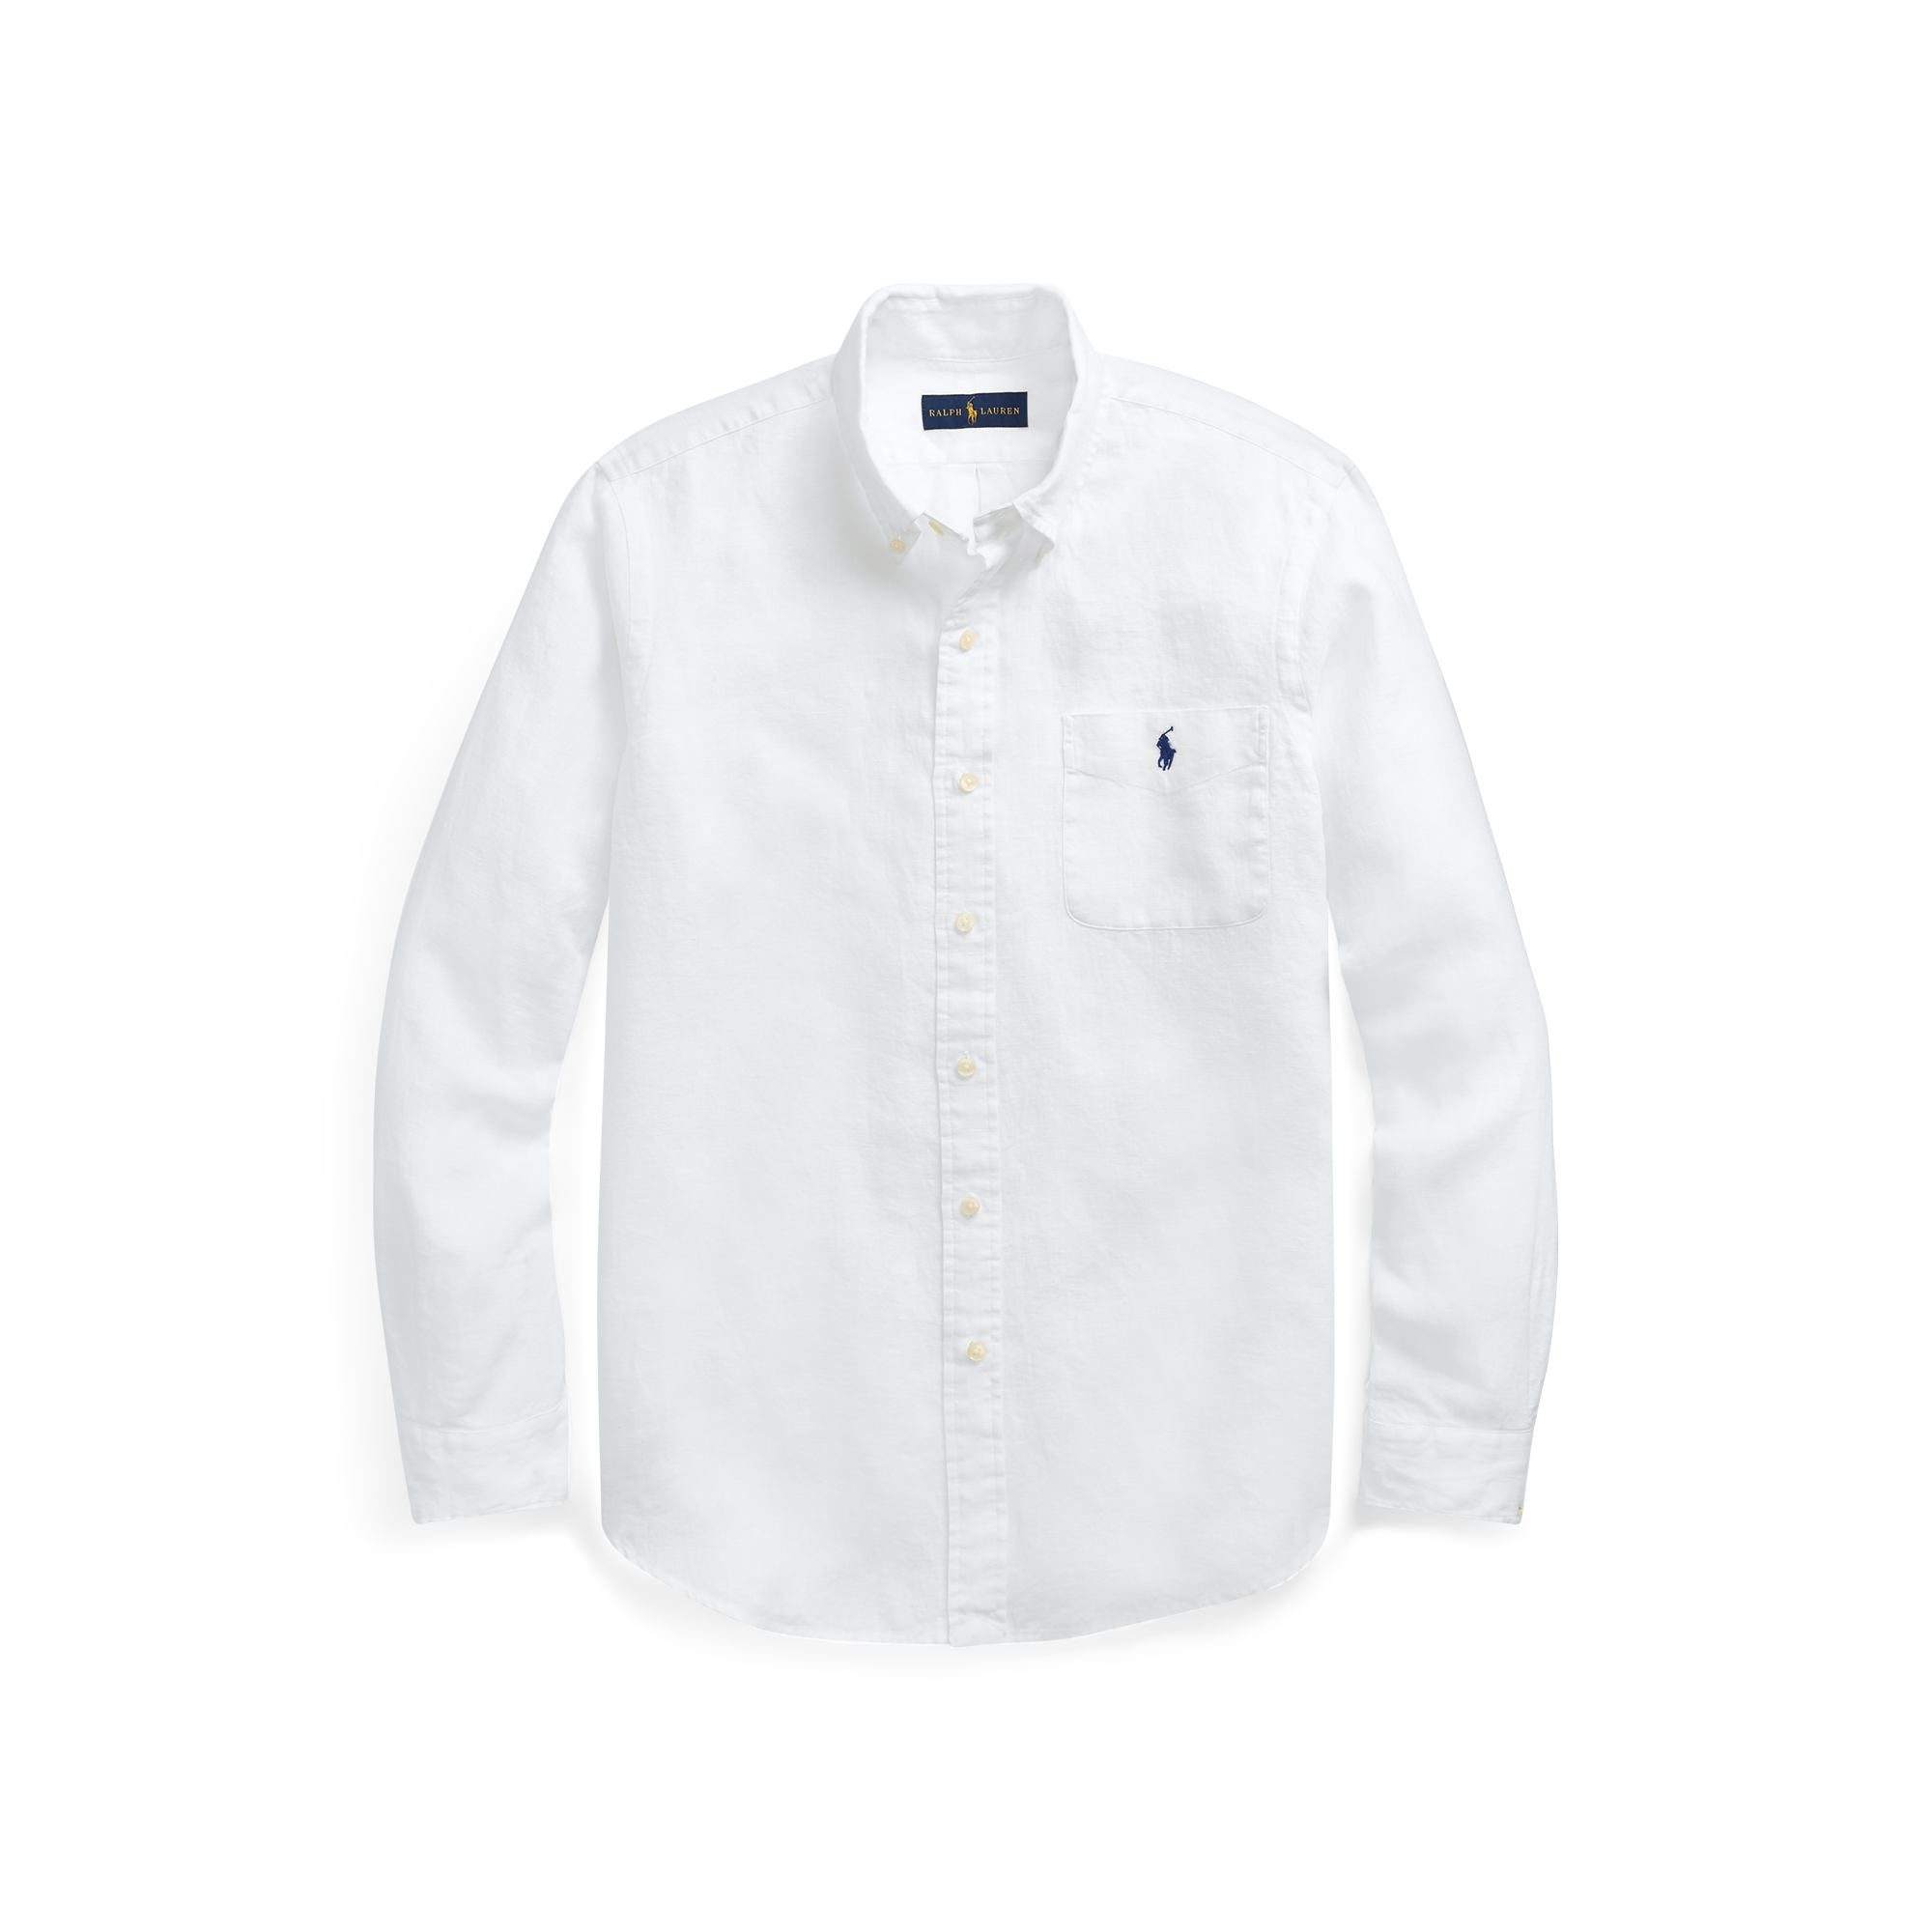 A classic button-down is a must-have